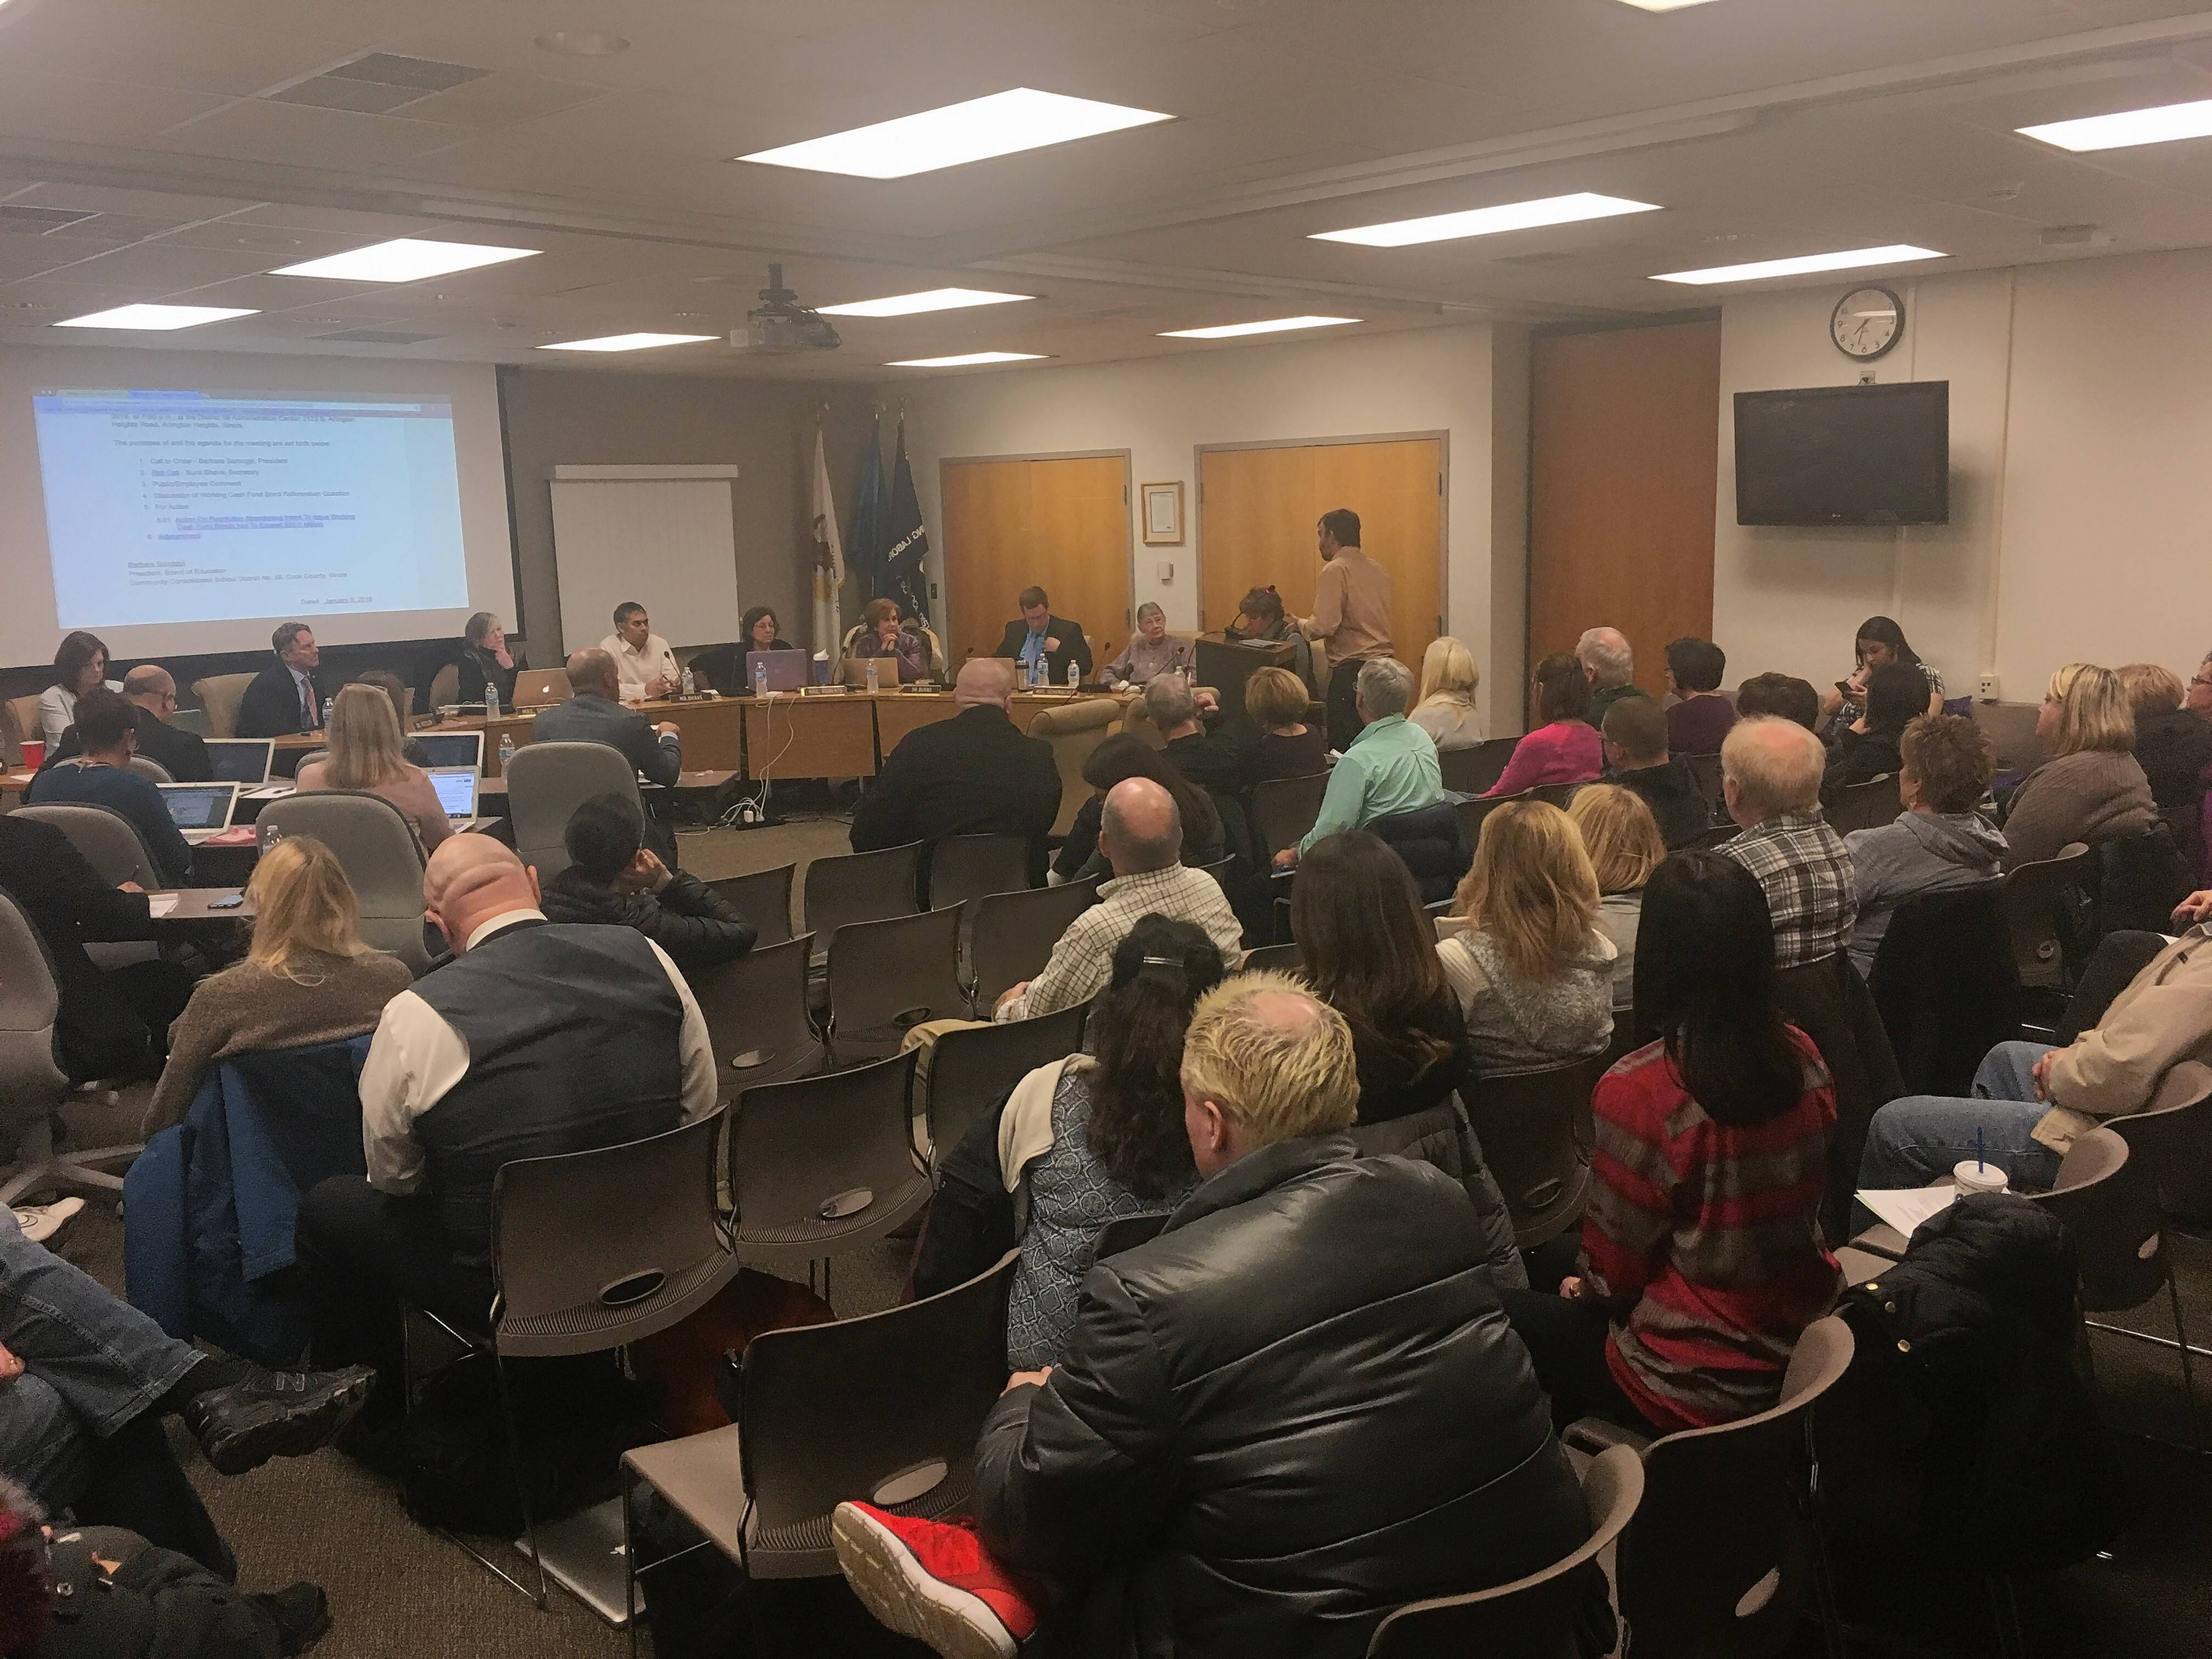 Elk Grove Township District 59 residents crowded a school board meeting Thursday as members decided to pull a bond issue referendum from the ballot.